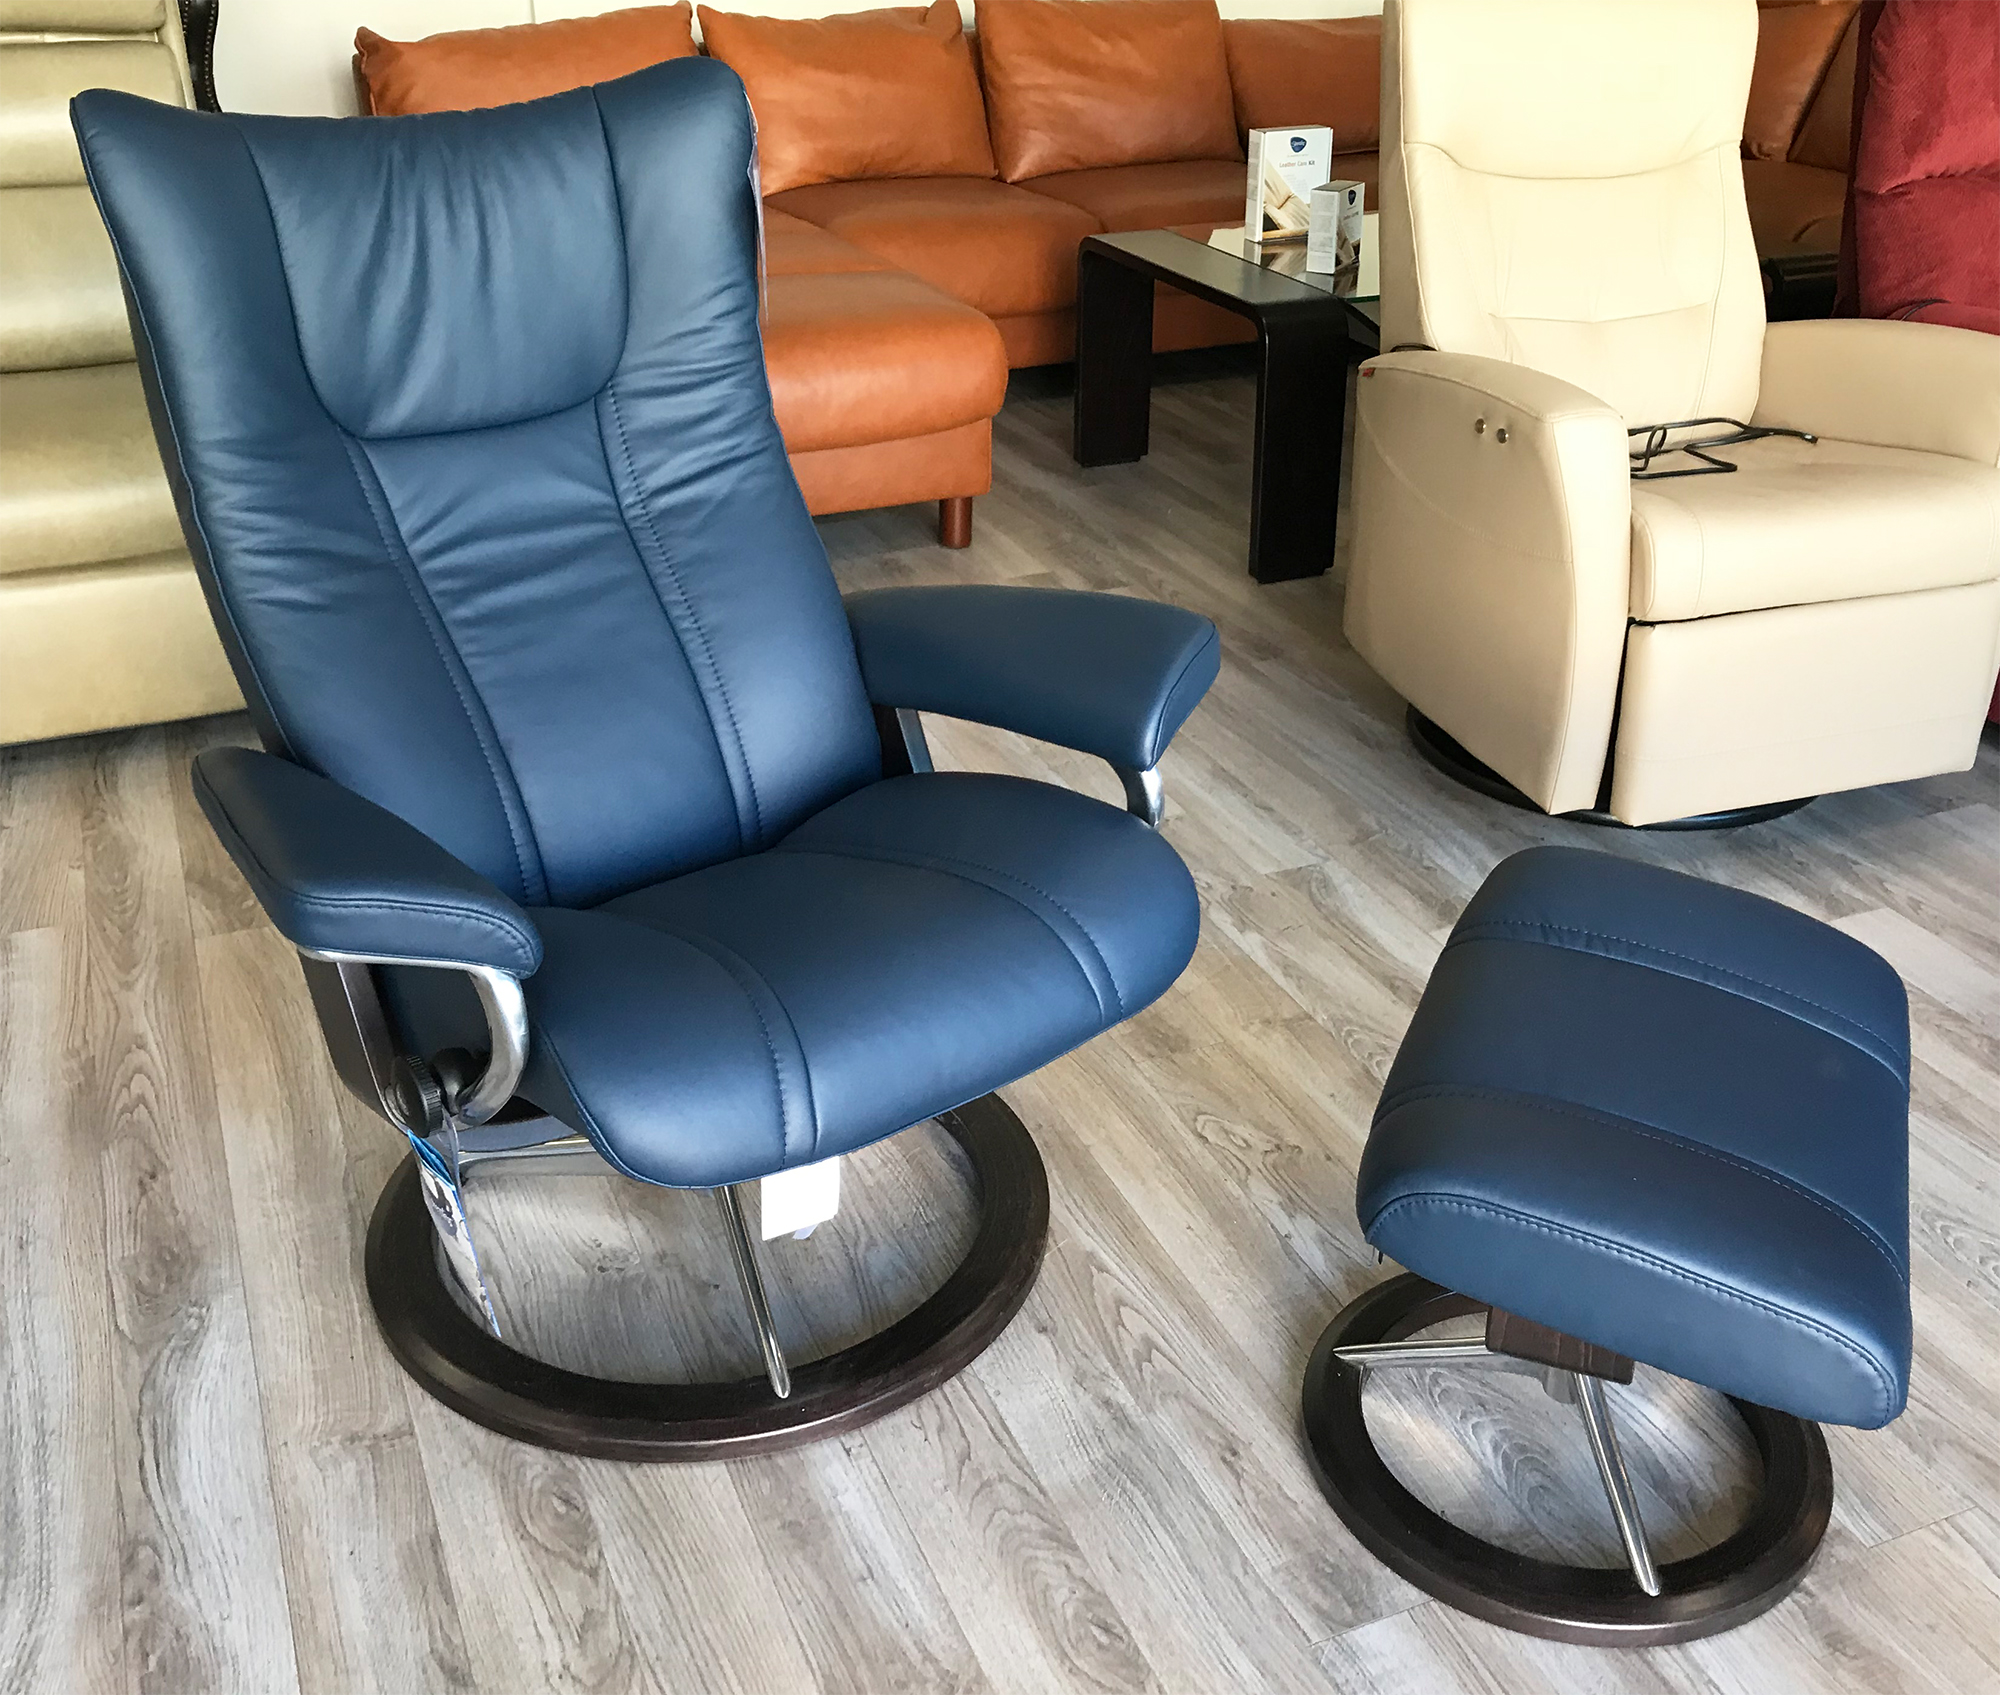 Picture of: Stressless Wing Signature Base Paloma Oxford Blue Leather Recliner Chair And Ottoman By Ekornes Stressless Wing Signature Base Paloma Oxford Blue Leather Chairs Recliners